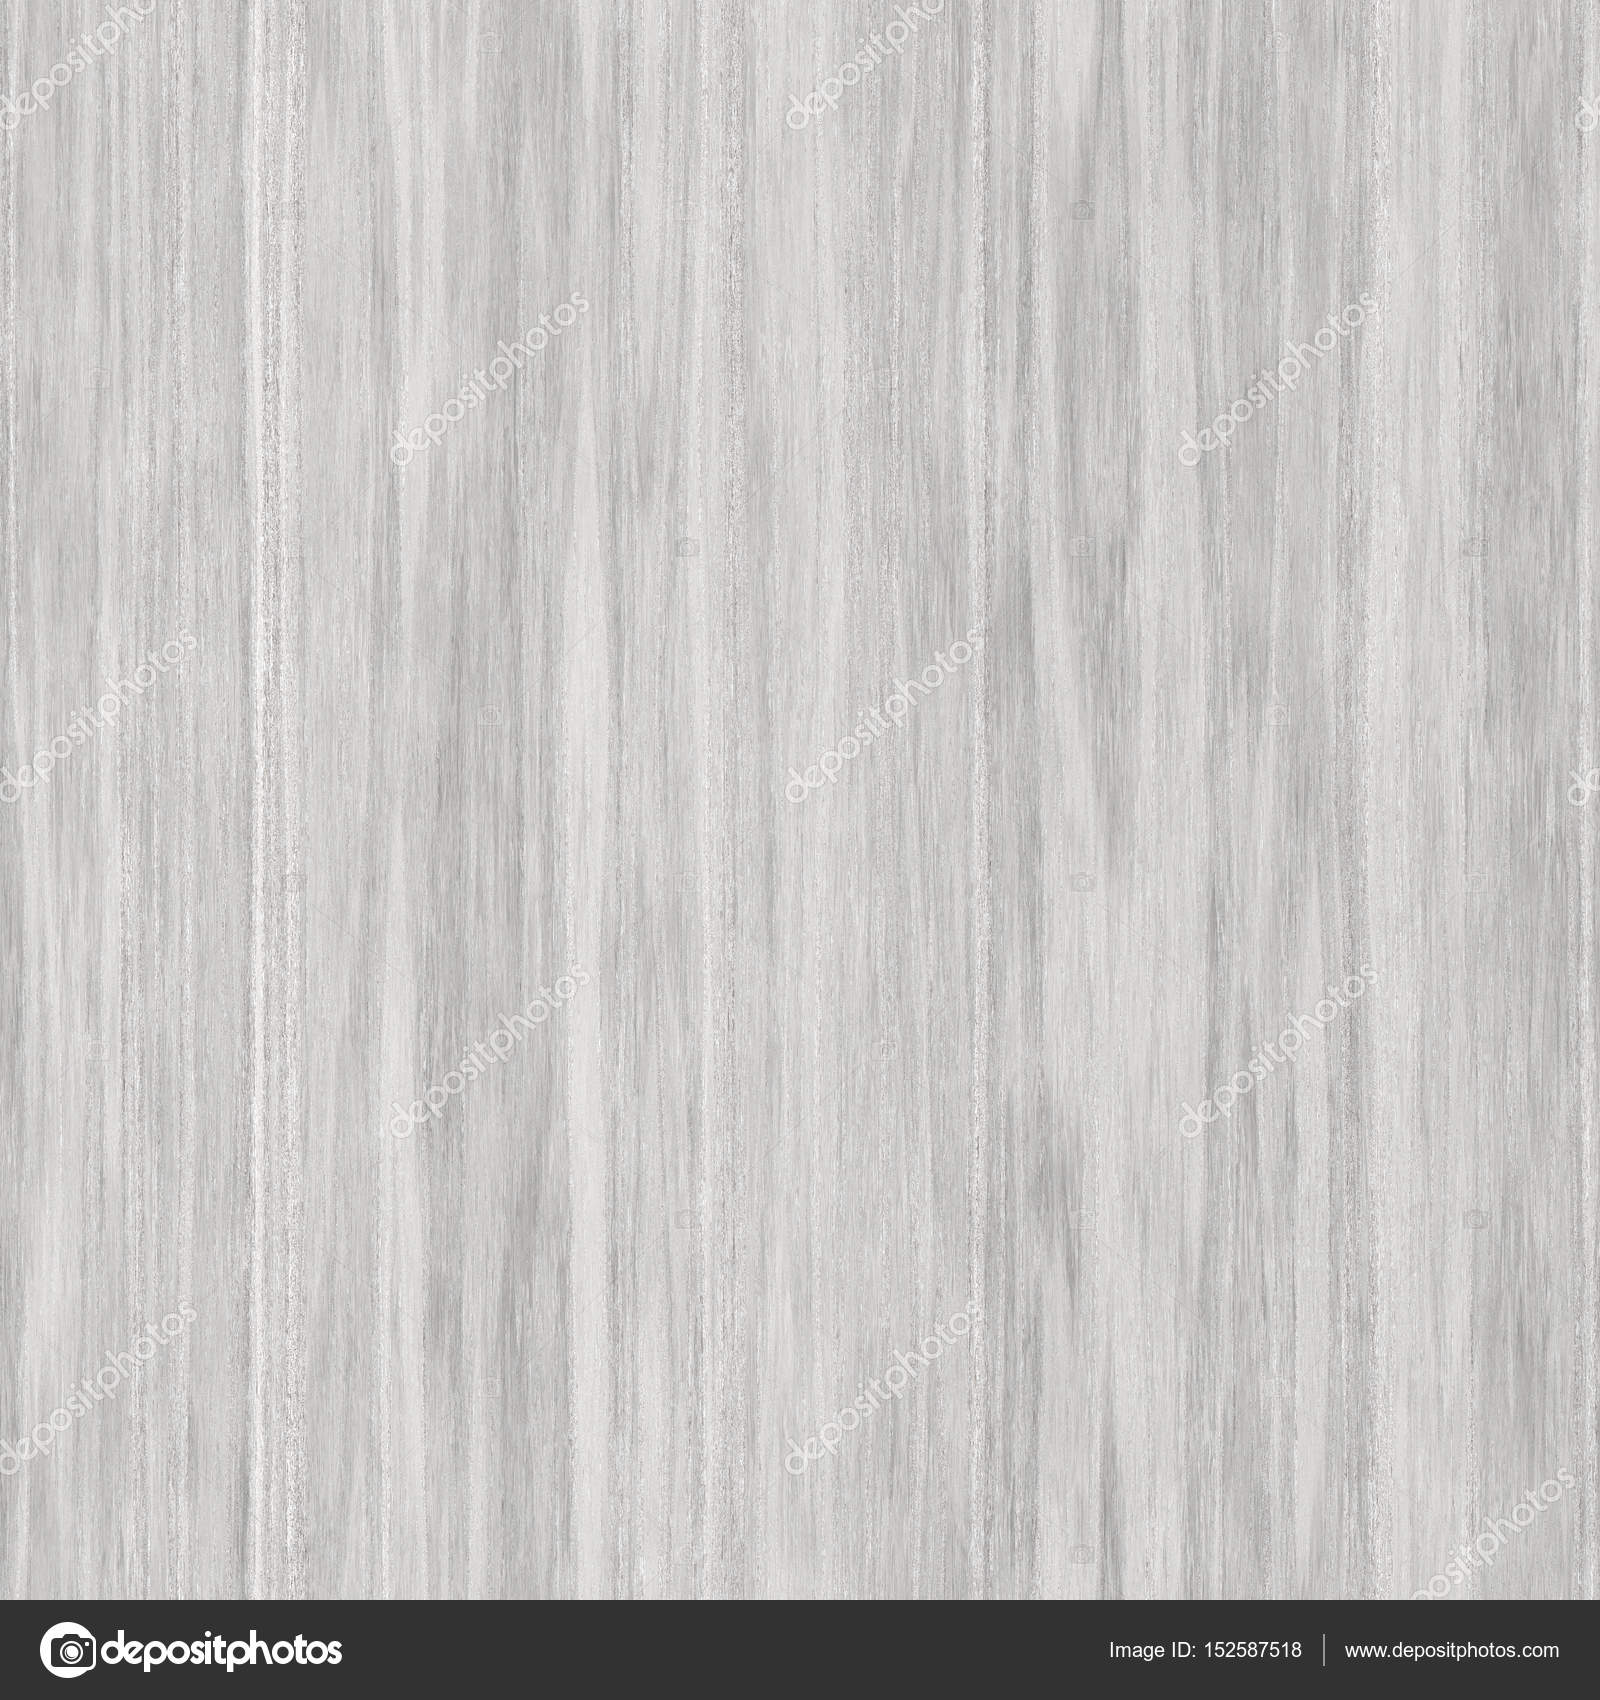 Gray Wooden Surface Light Wood Background Seamless